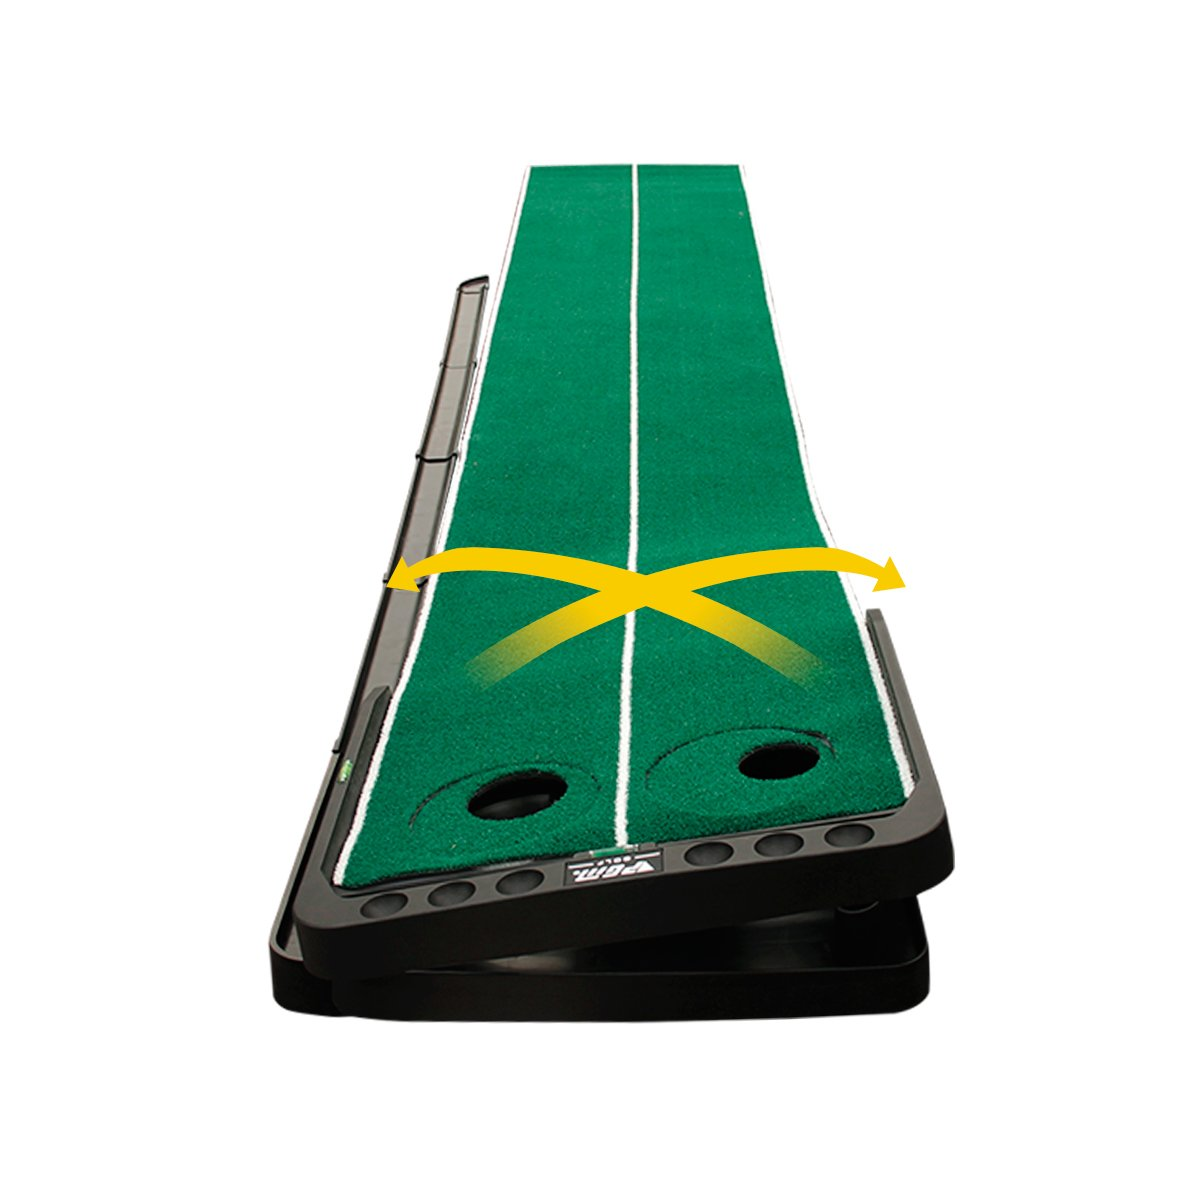 Uboway Indoor Golf Training Mat Putting Green System with Adjustable Two Rotating Holes Automobile Ball Return System for Golfer 1.6 x 10 Ft